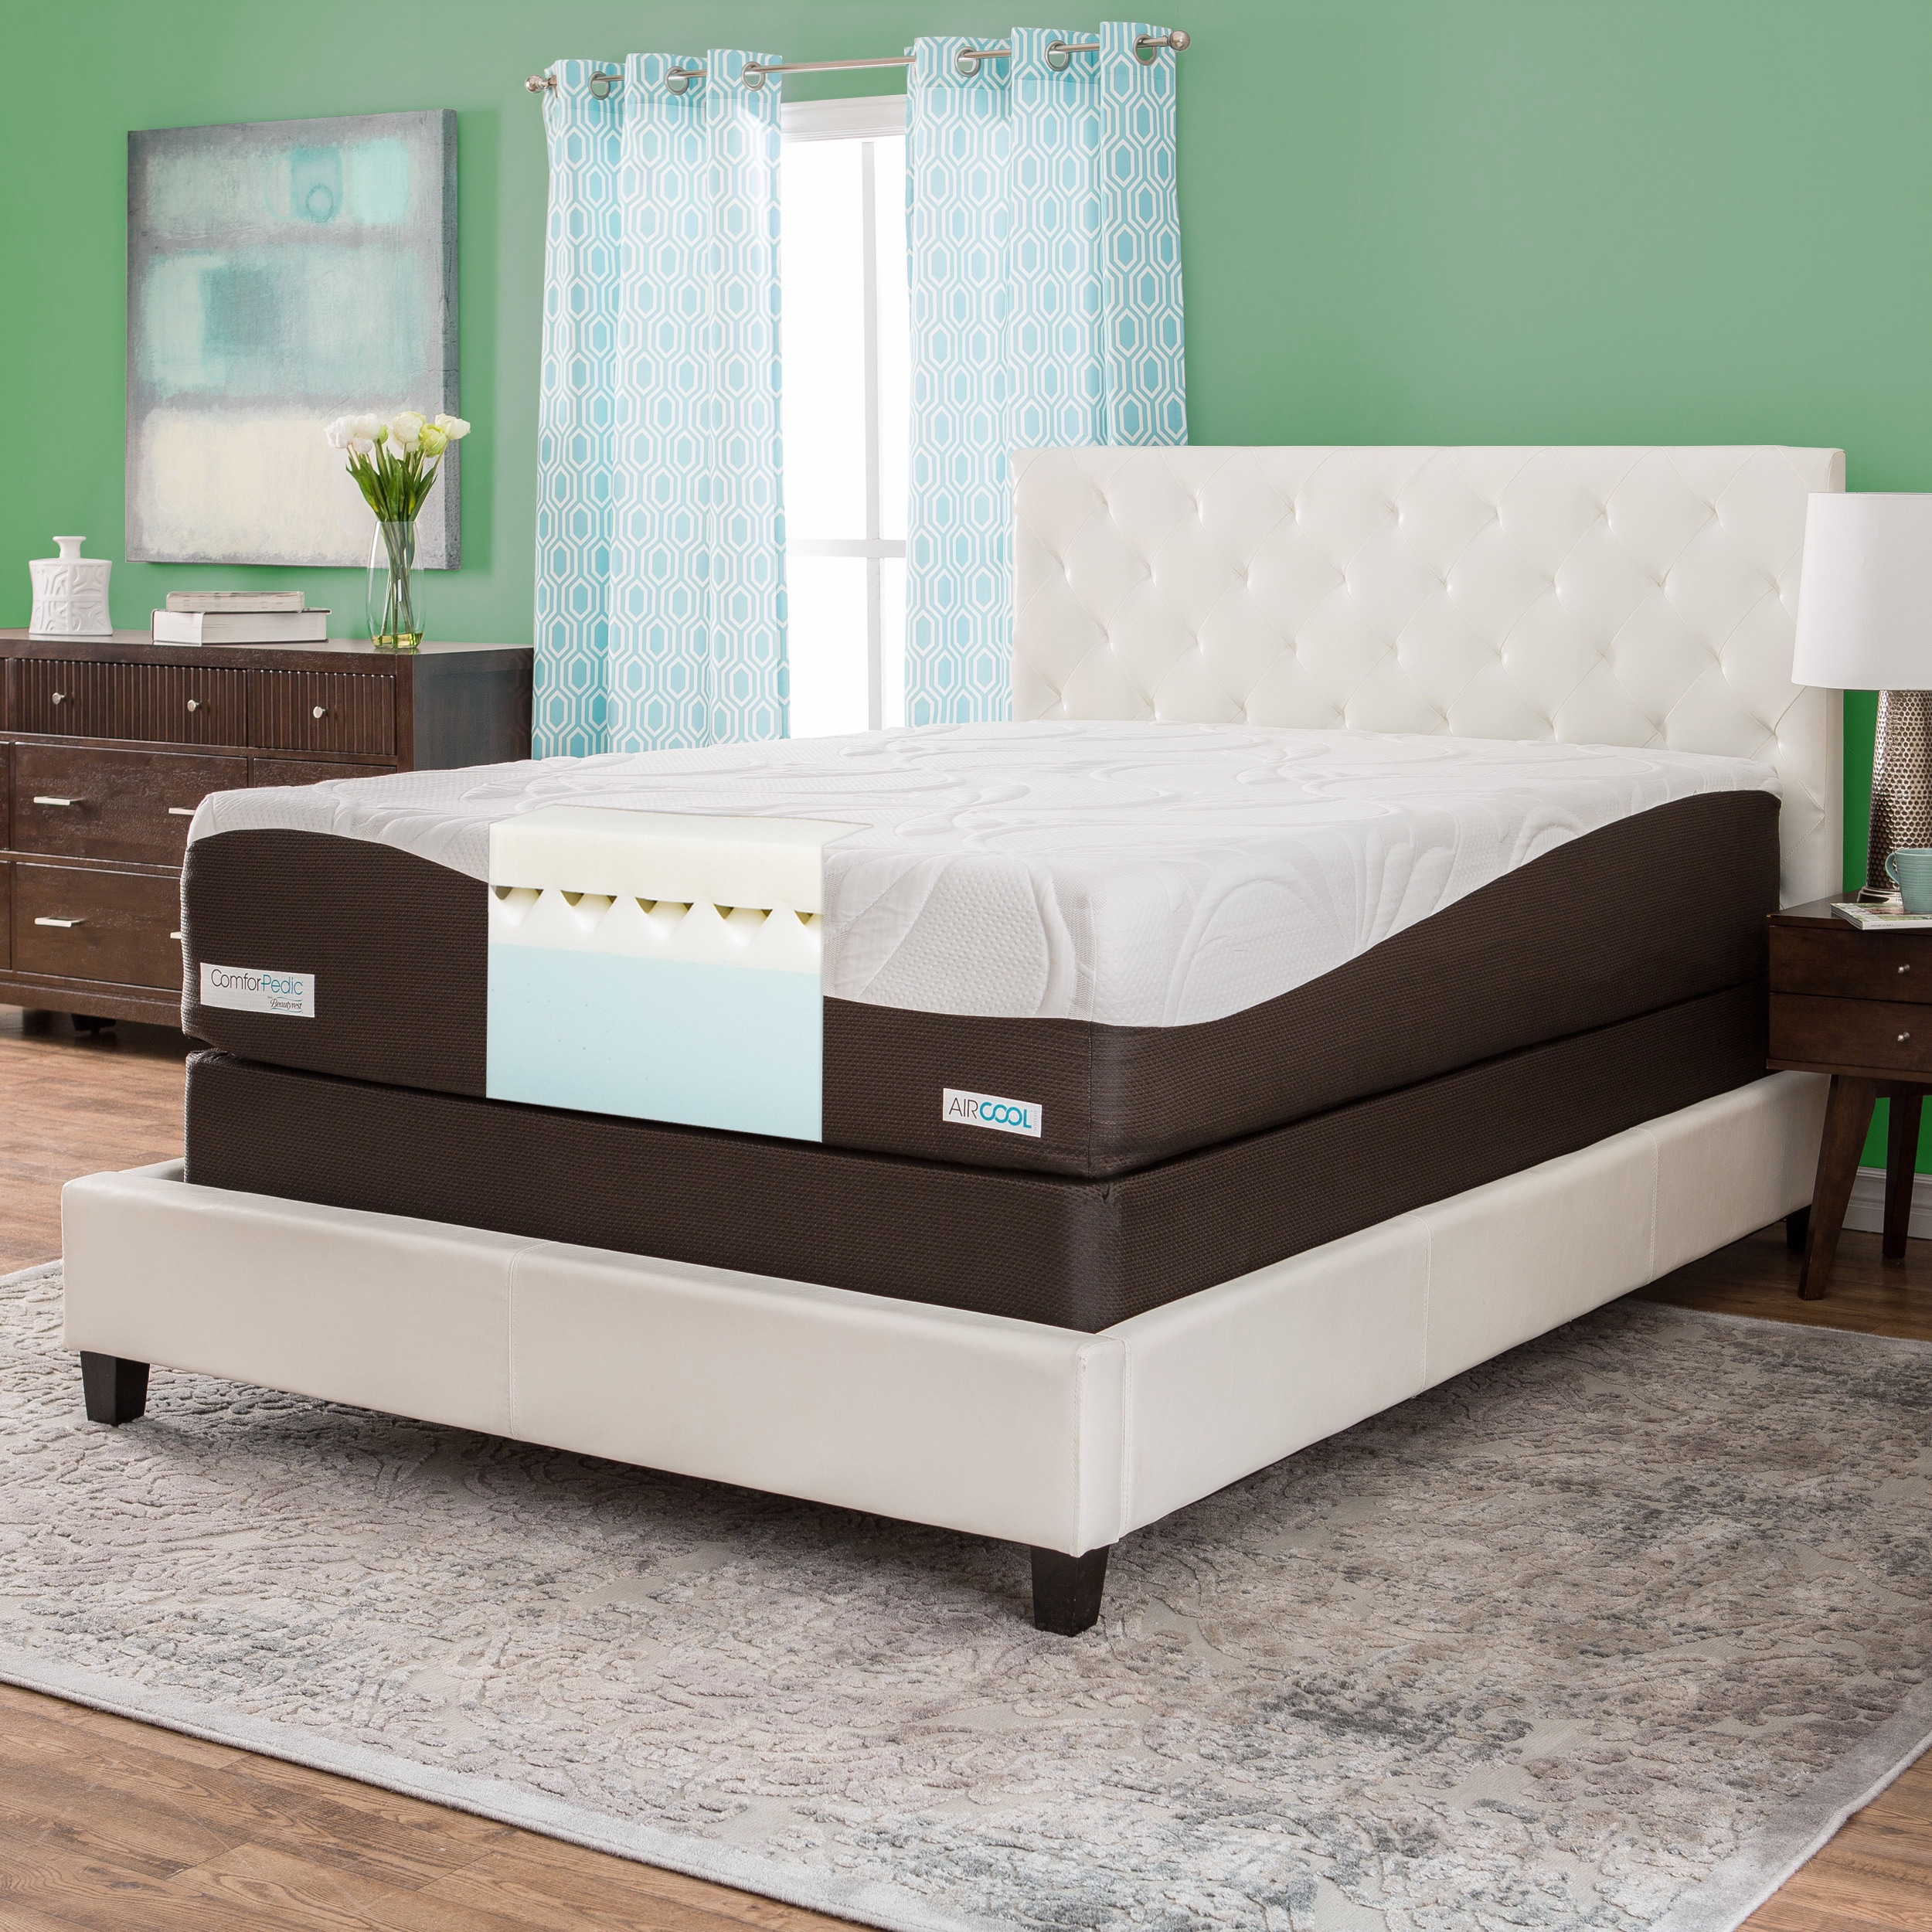 Simmons Beautyrest ComforPedic from Beautyrest 14-inch Ki...